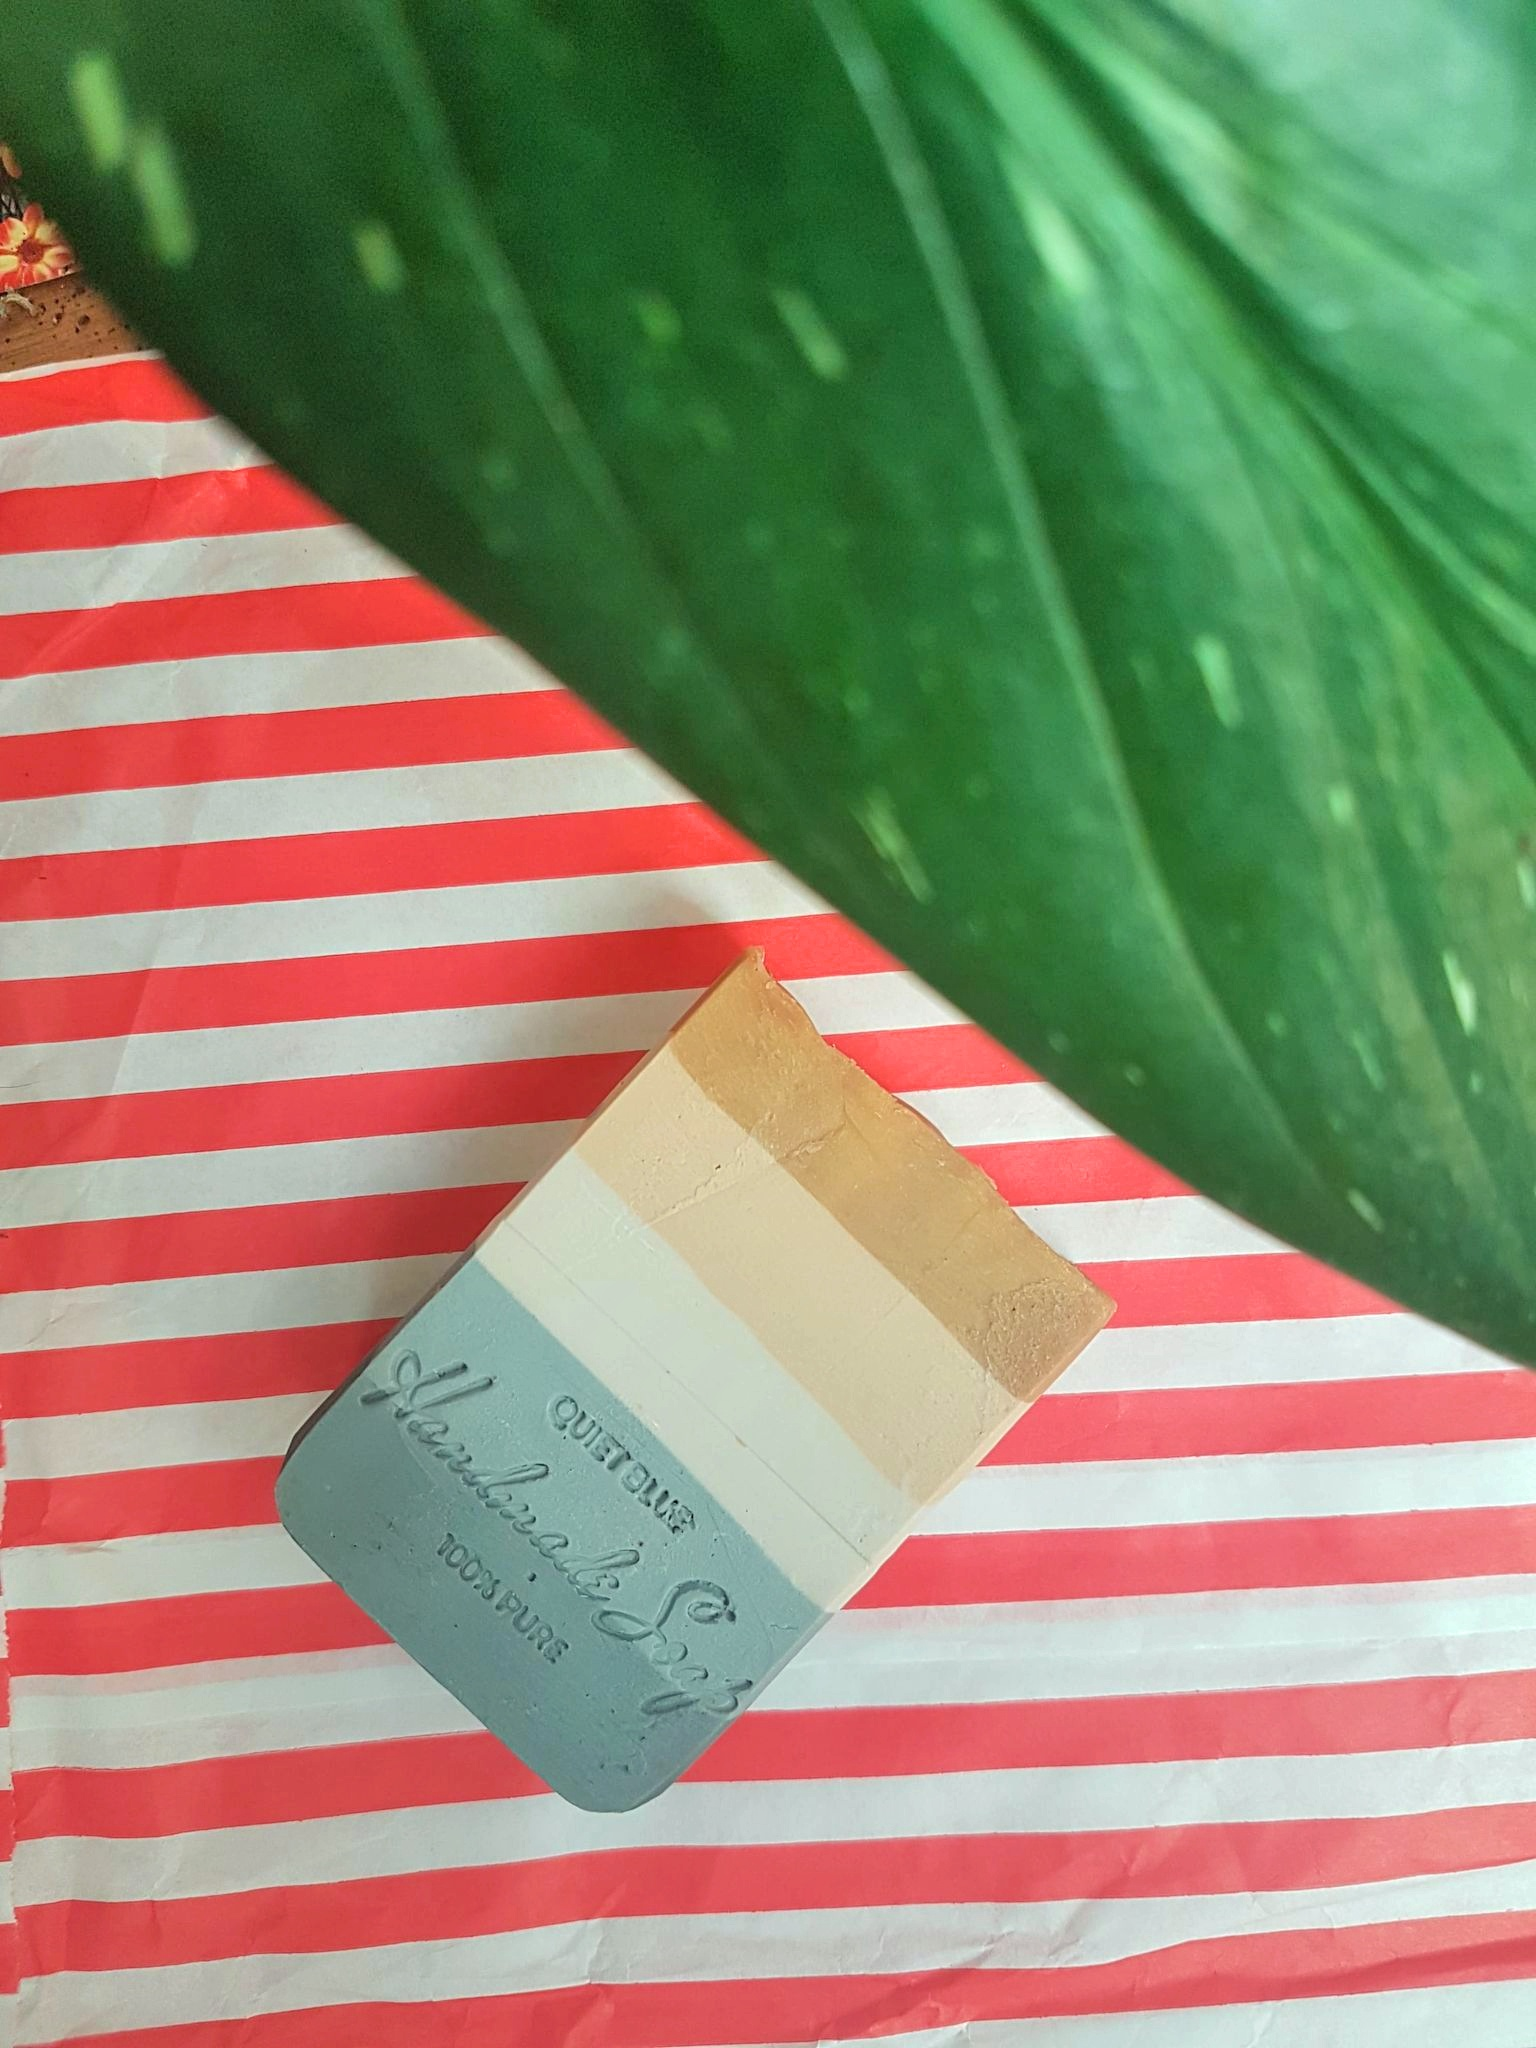 Quiet Blue Handmade Soap in scent Surf & Suntan.  The soap is sitting on a red and white striped background next to a big tropical green leaf. This soap has five layers of colour: dark grey, light grey, cream, cappuccino, and tan.